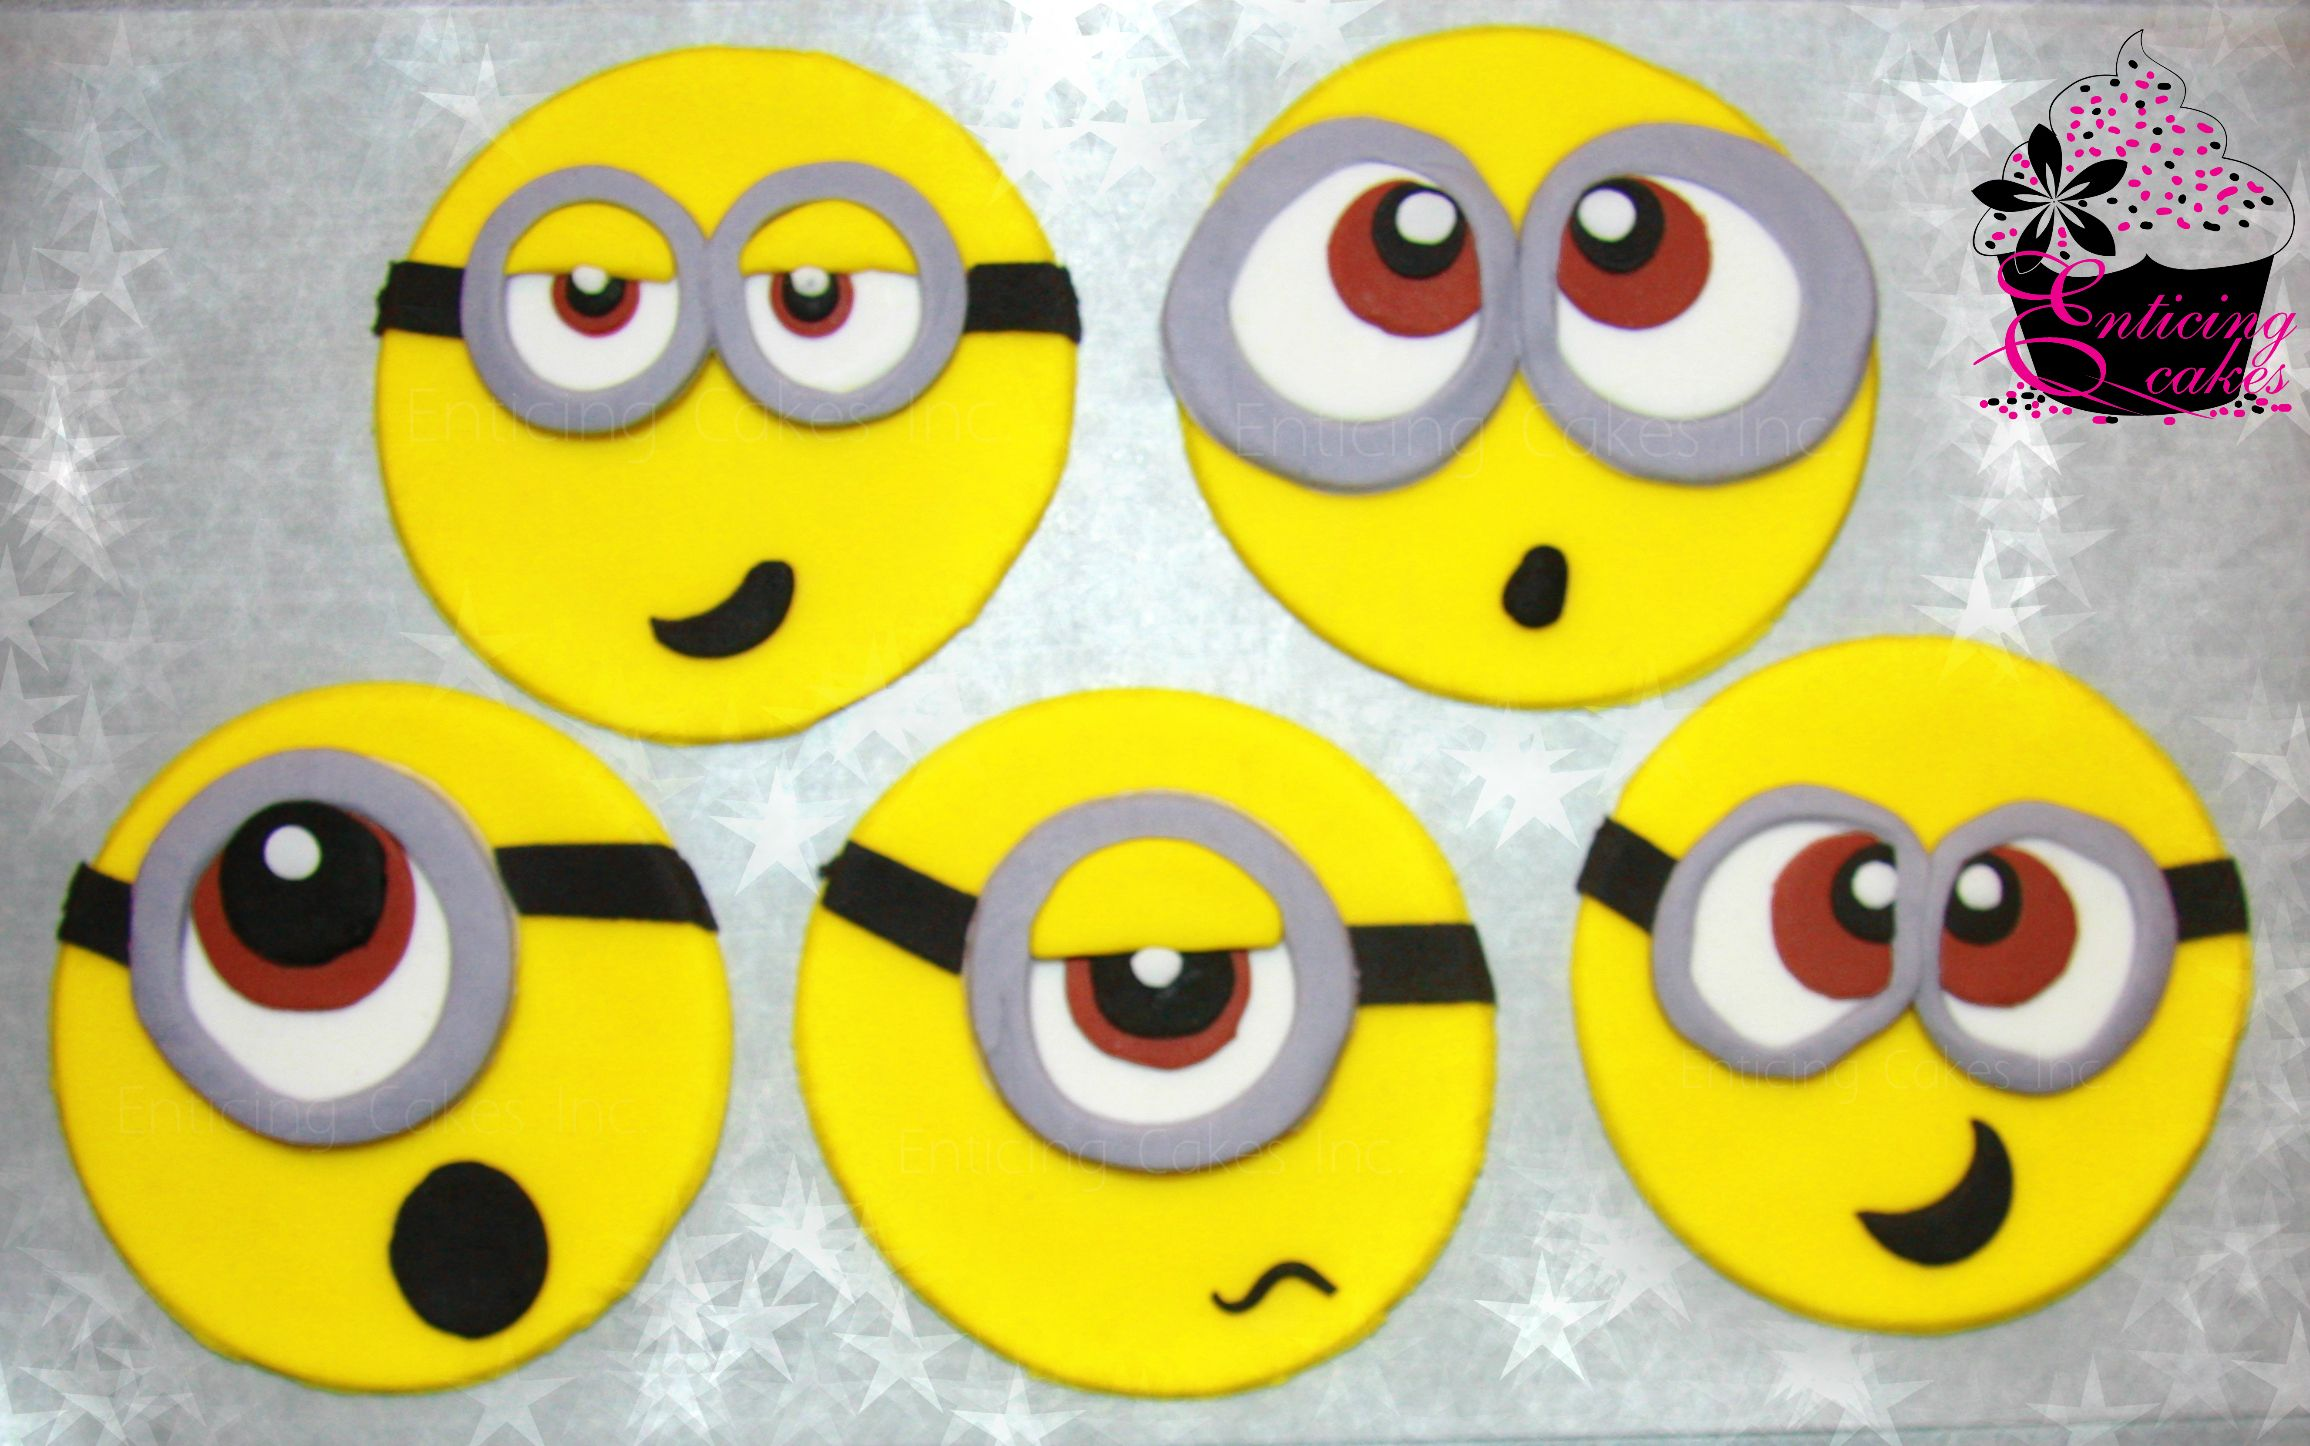 With the new Despicable Me movie out, I started thinking about re-sharing (on social media) some of my old Minion posts. When going through them, I realized I never posted a a tutorial for How to Make Minion Cupcake Toppers. That wouldn't be a big deal except I shot this tutorial back in Ya'll.